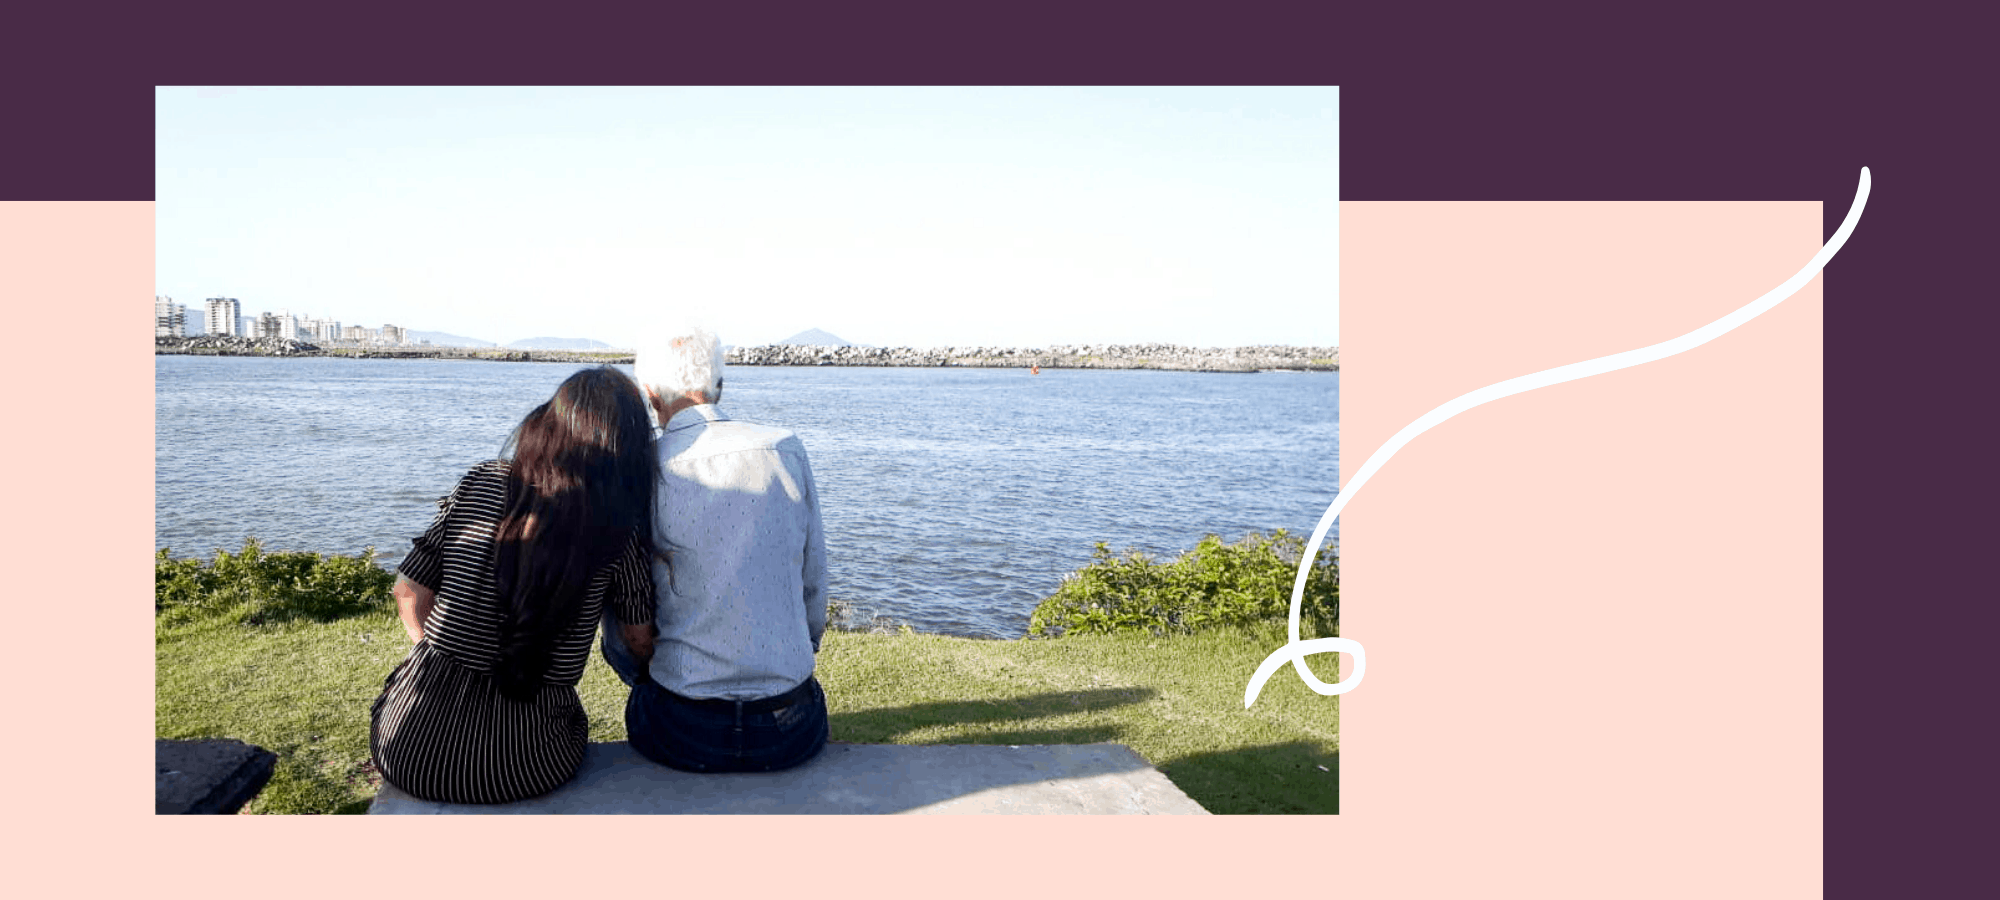 Couple sits on bench overlooking water